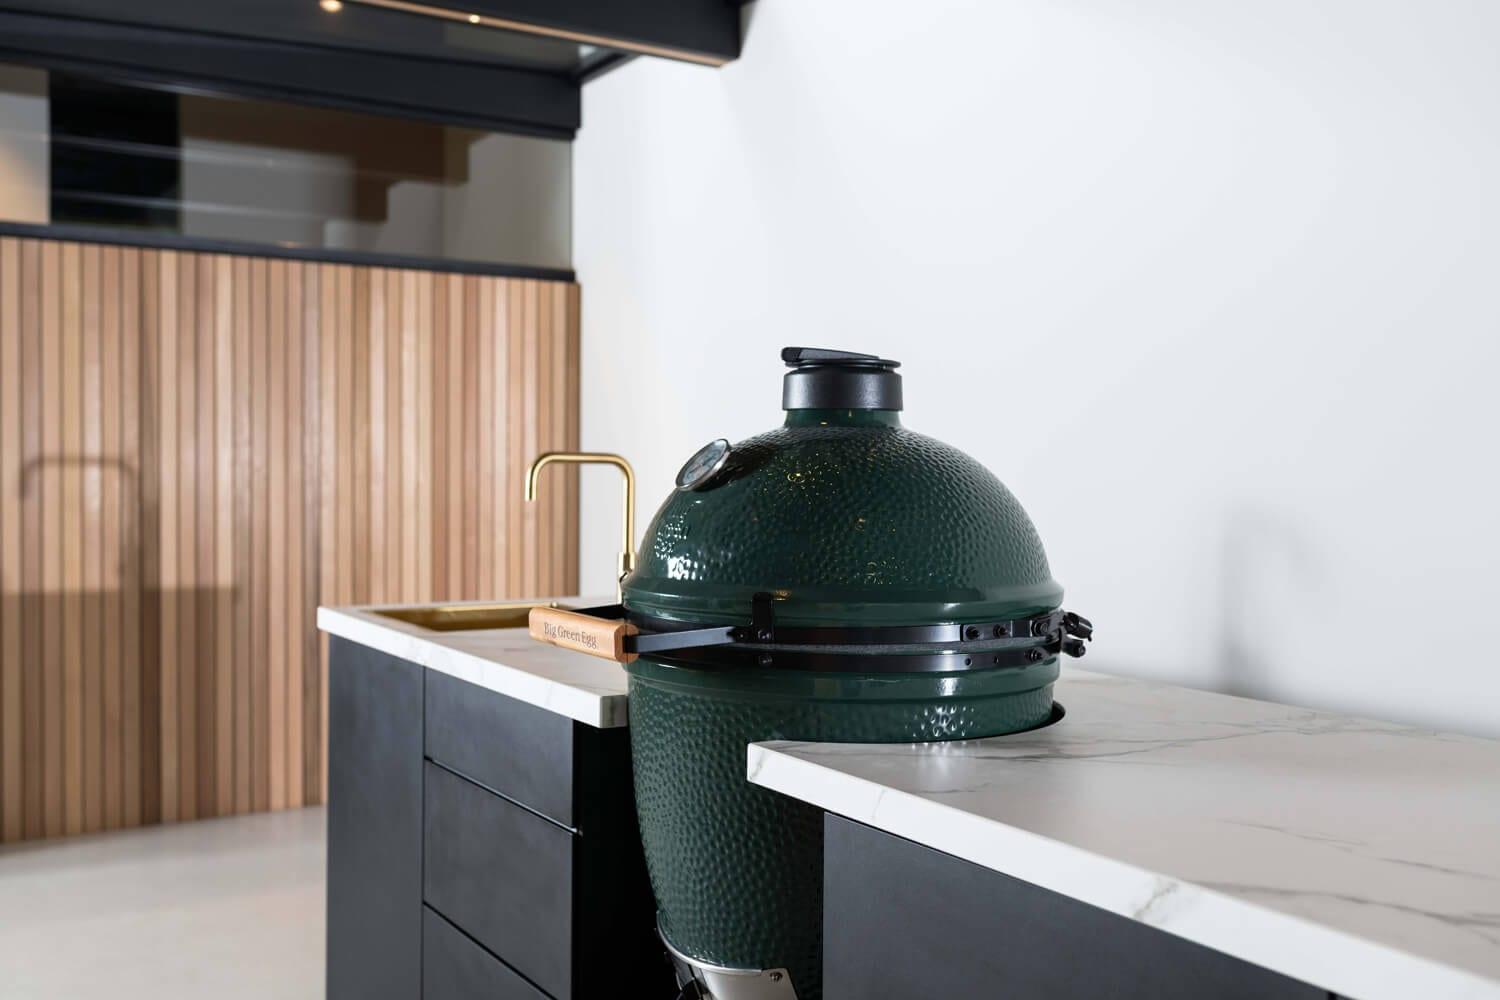 Buitenkeuken showroom Ede